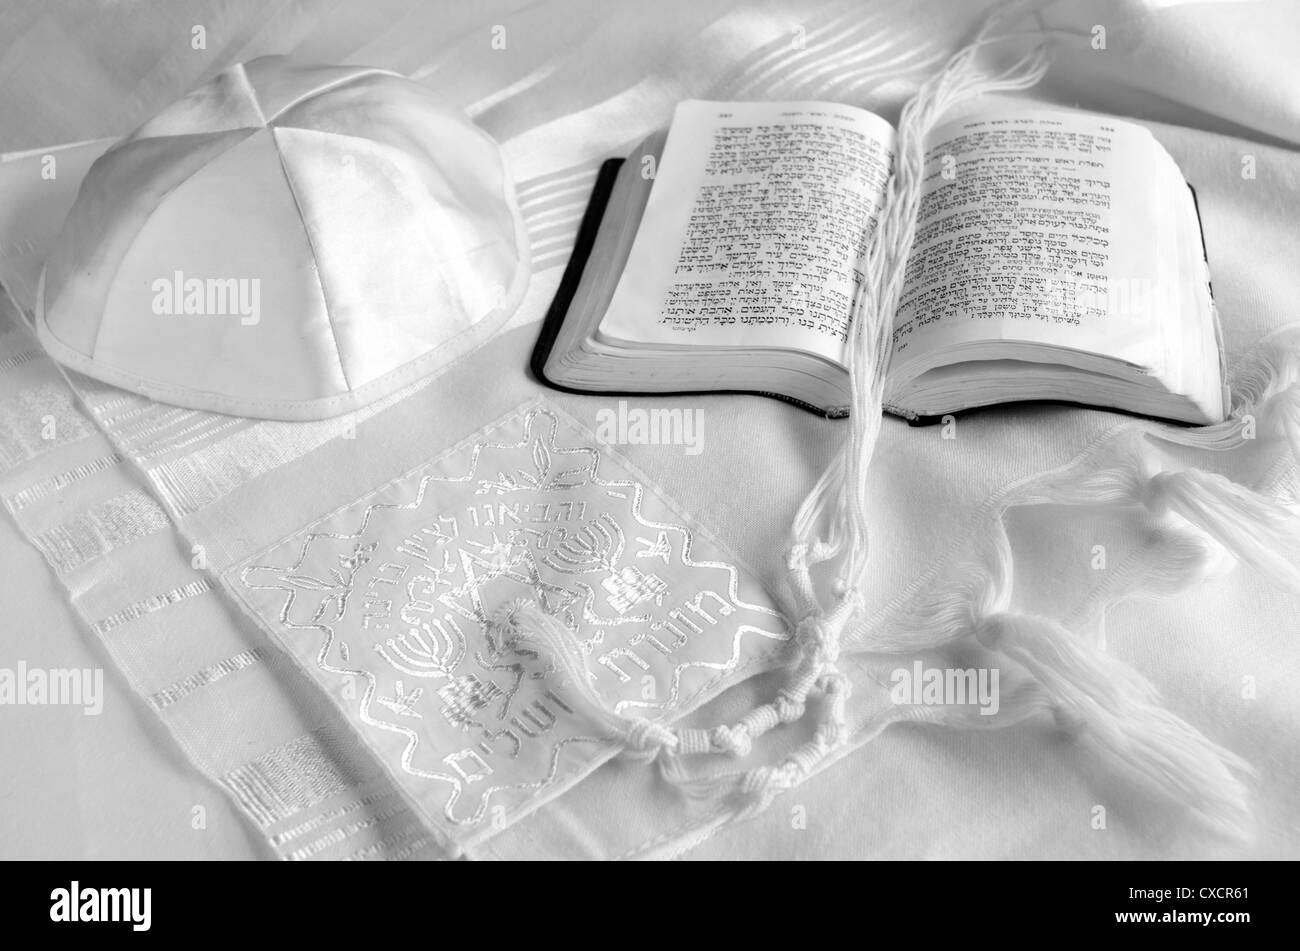 Tallit, yarmulke and praying book. - Stock Image